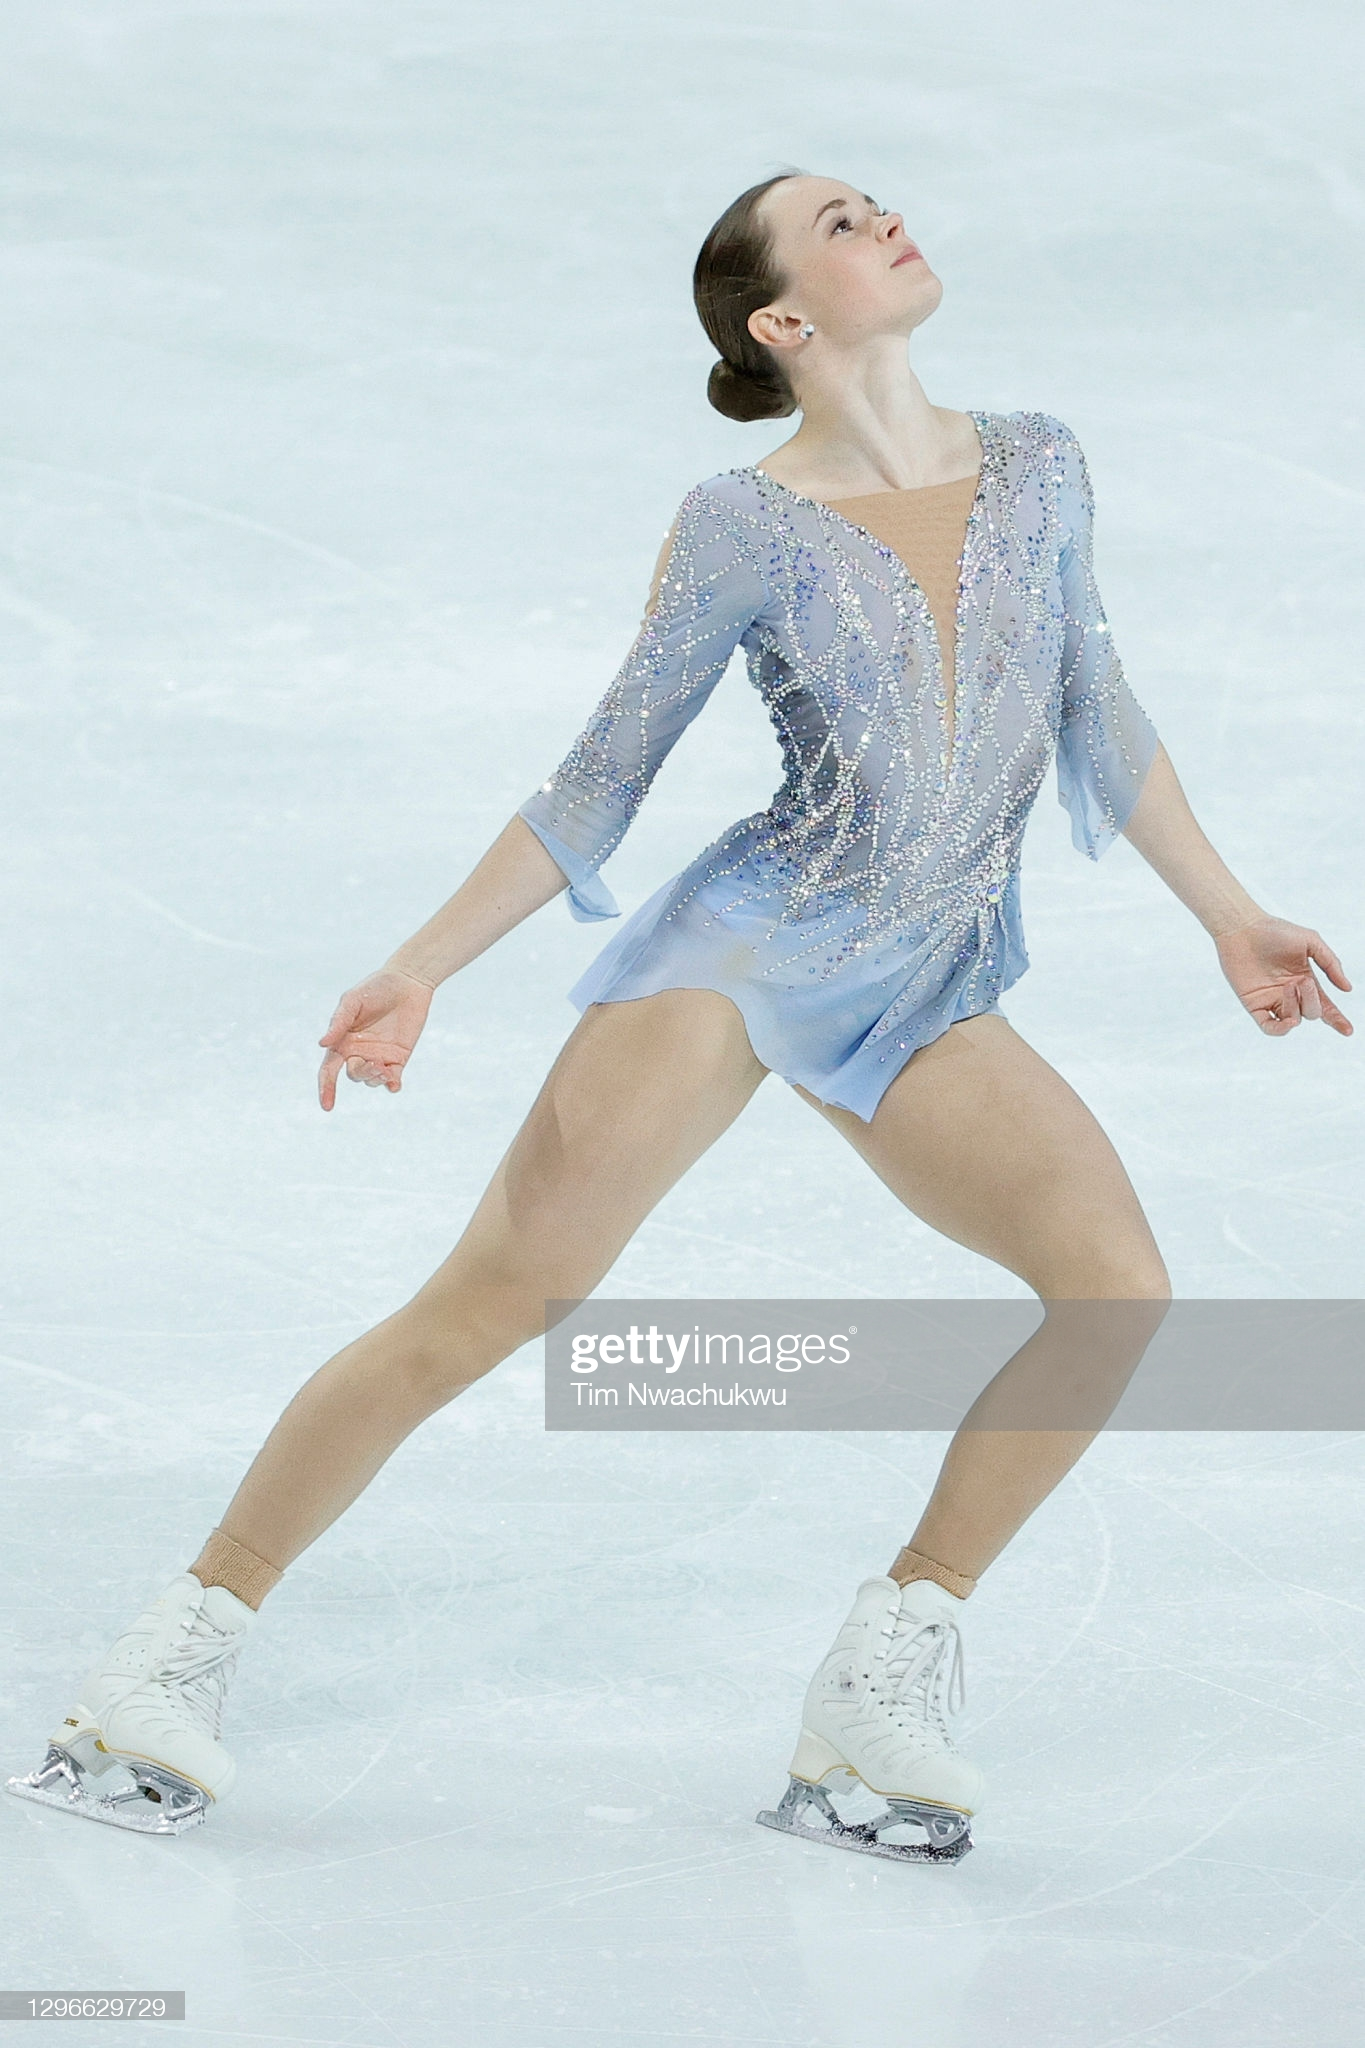 https://i.ibb.co/nBmpKHJ/LAS-VEGAS-NEVADA-JANUARY-15-Mariah-Bell-competes-in-the-ladies-free-skate-during-the-U-S-Figure-Skat.jpg